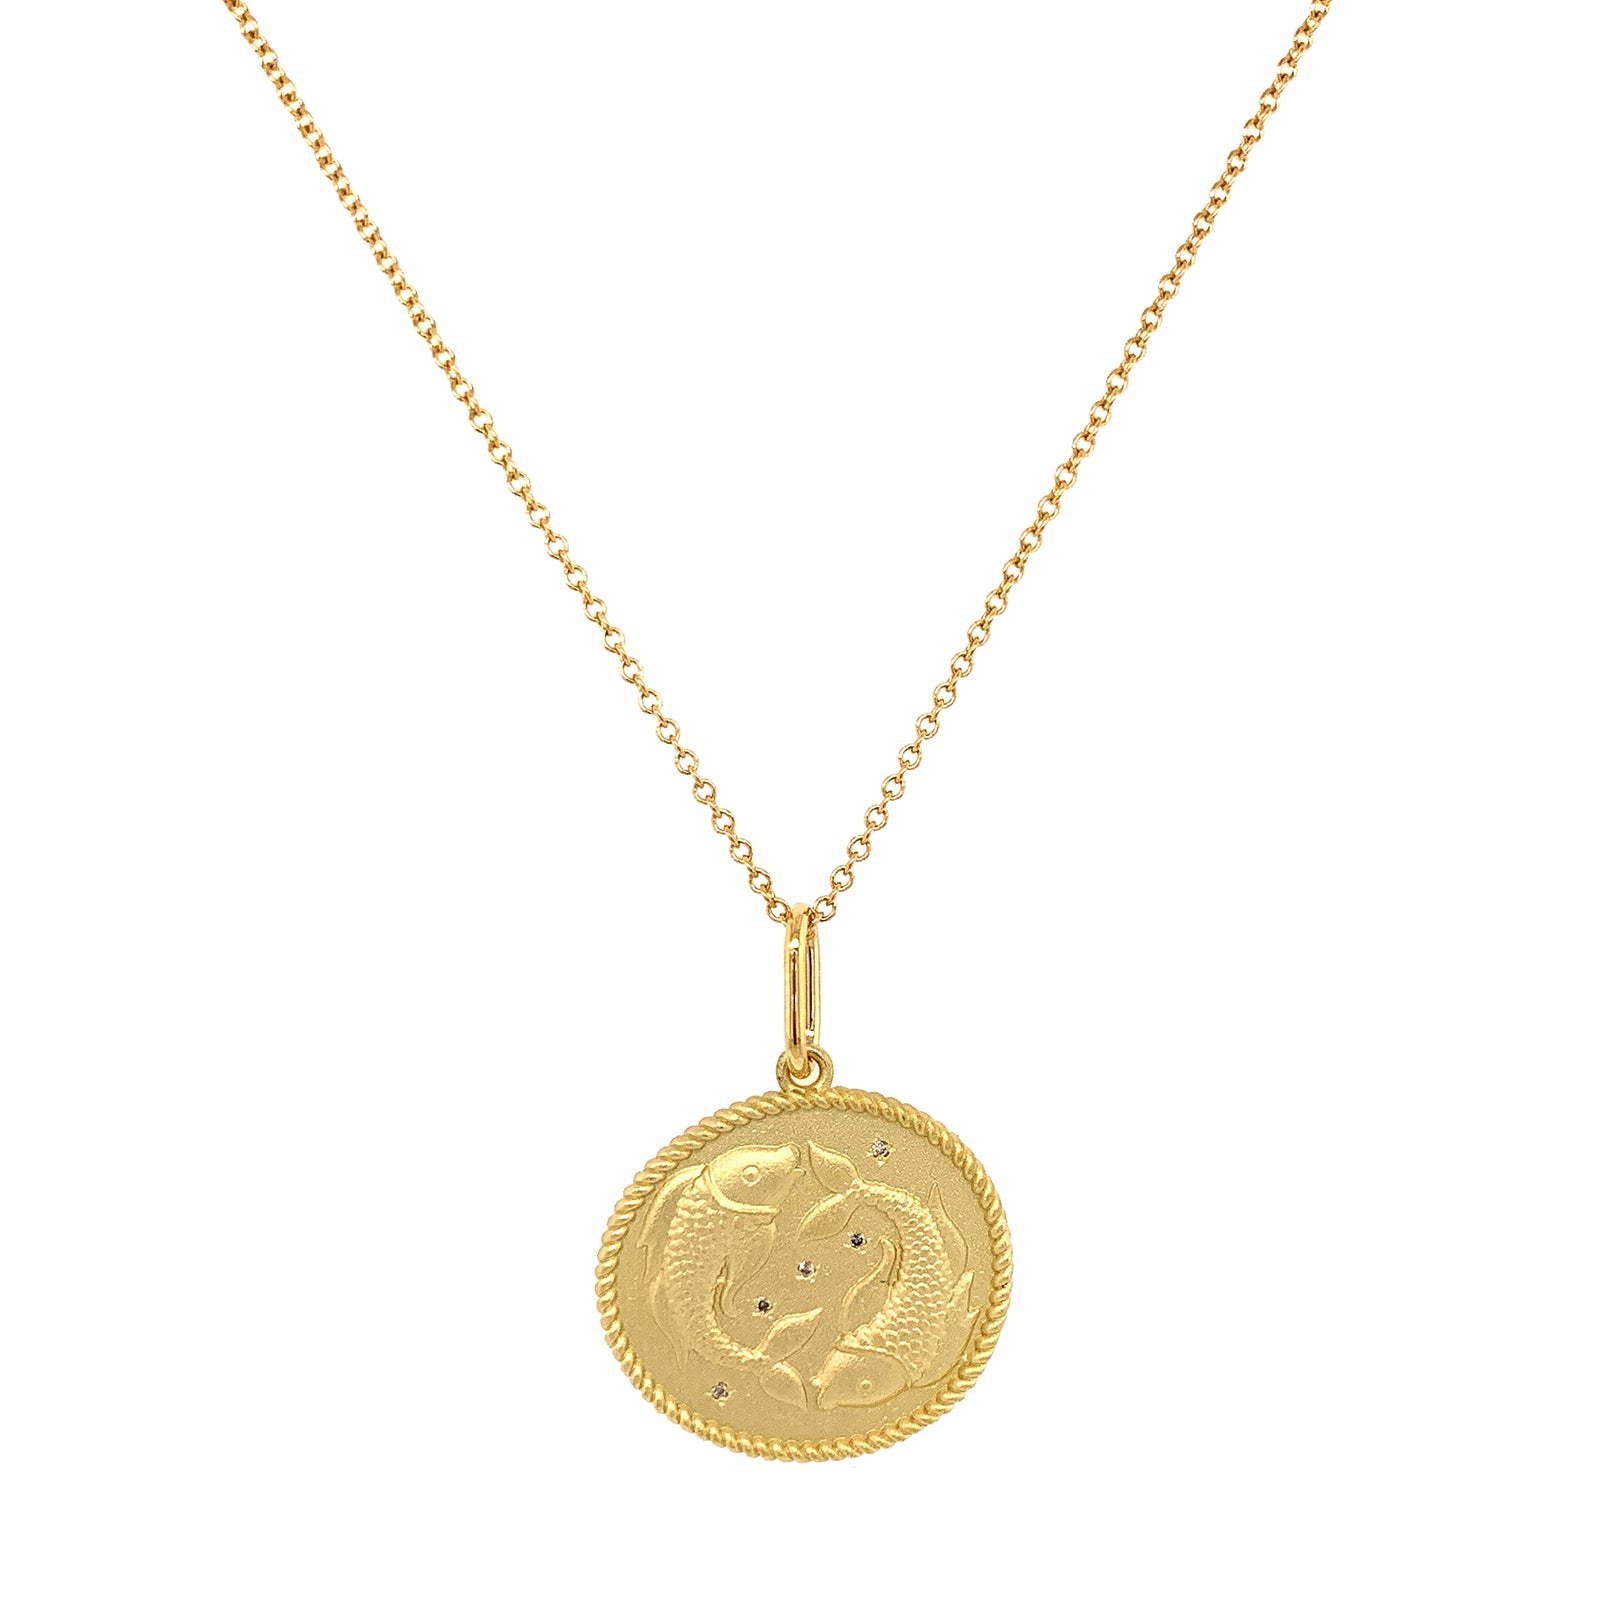 Colette Zodiac Double Sided Necklace - Pisces - Necklaces - Broken English Jewelry